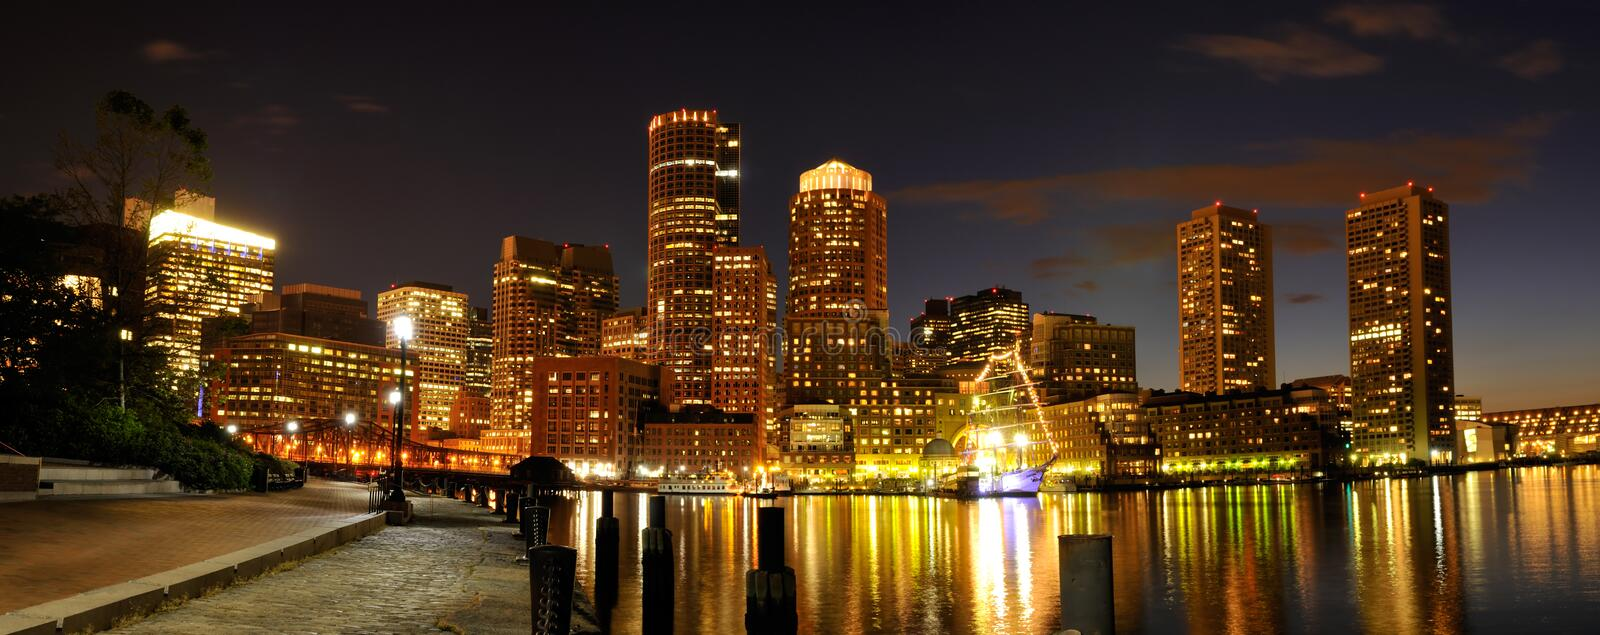 Boston Harbor and Skyline royalty free stock images